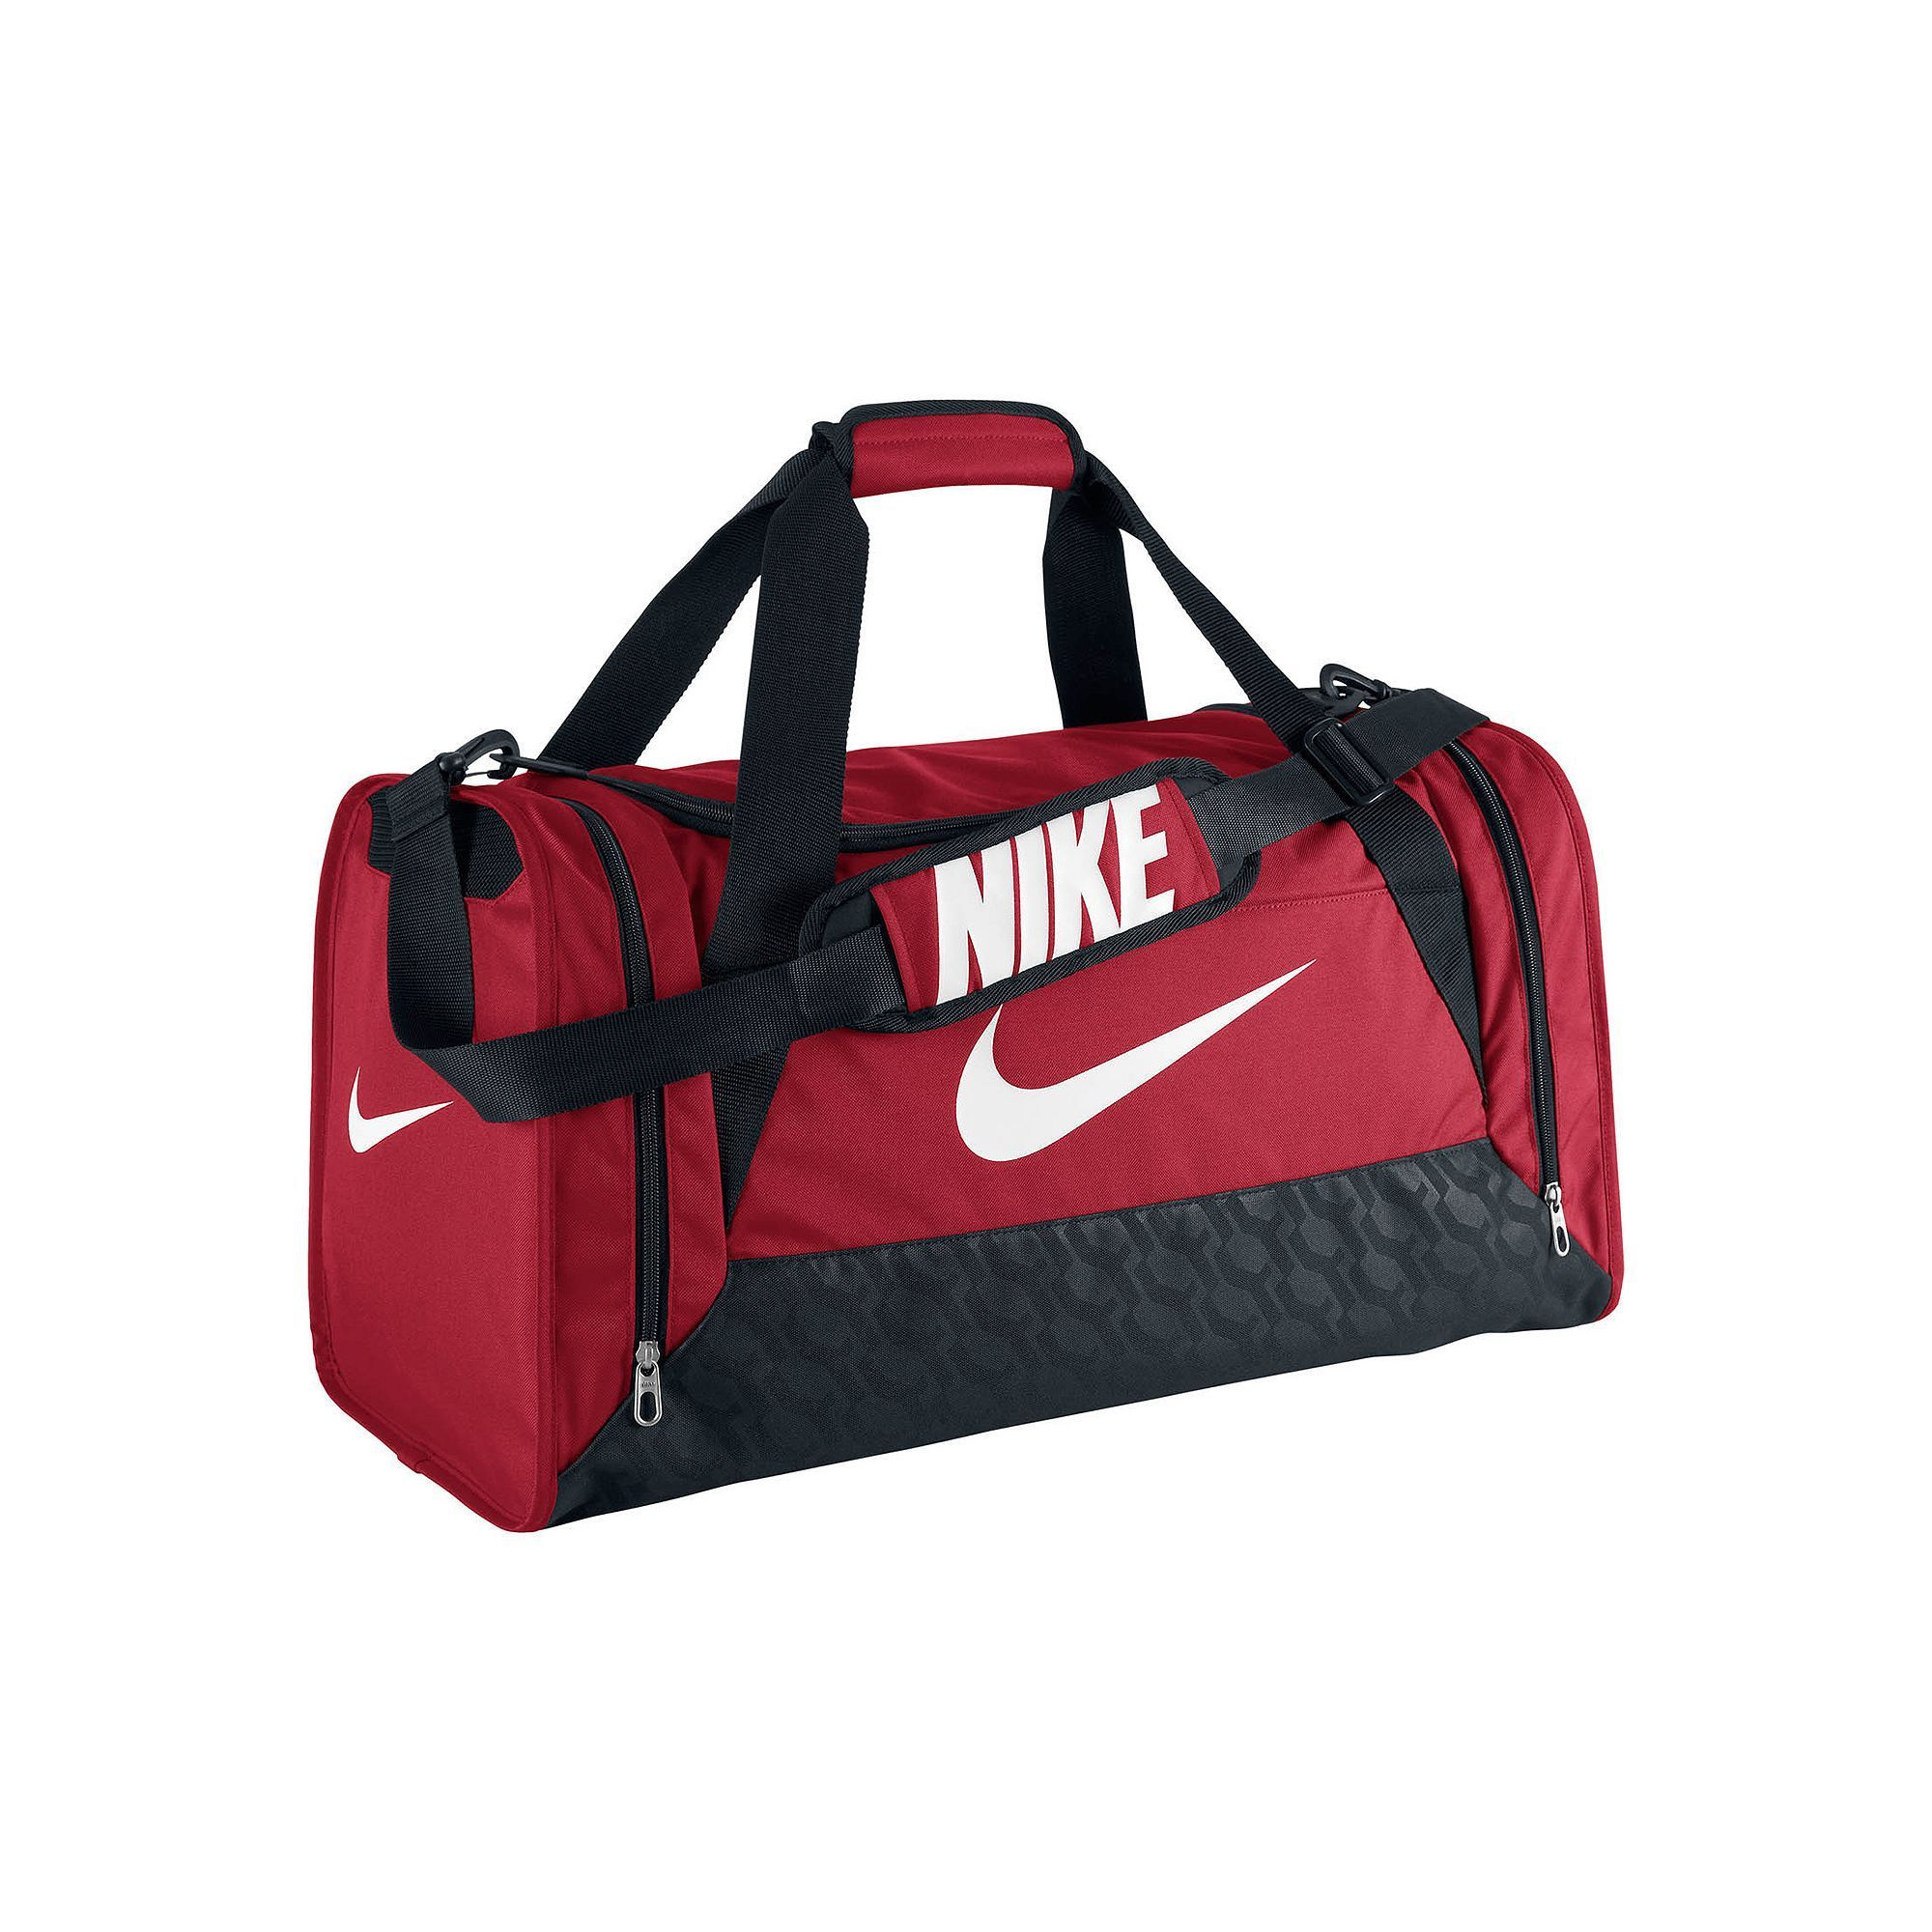 9b3388102 Nike Brasilia 6 Medium Duffel Bag, Red | Products | Nike duffle bag ...